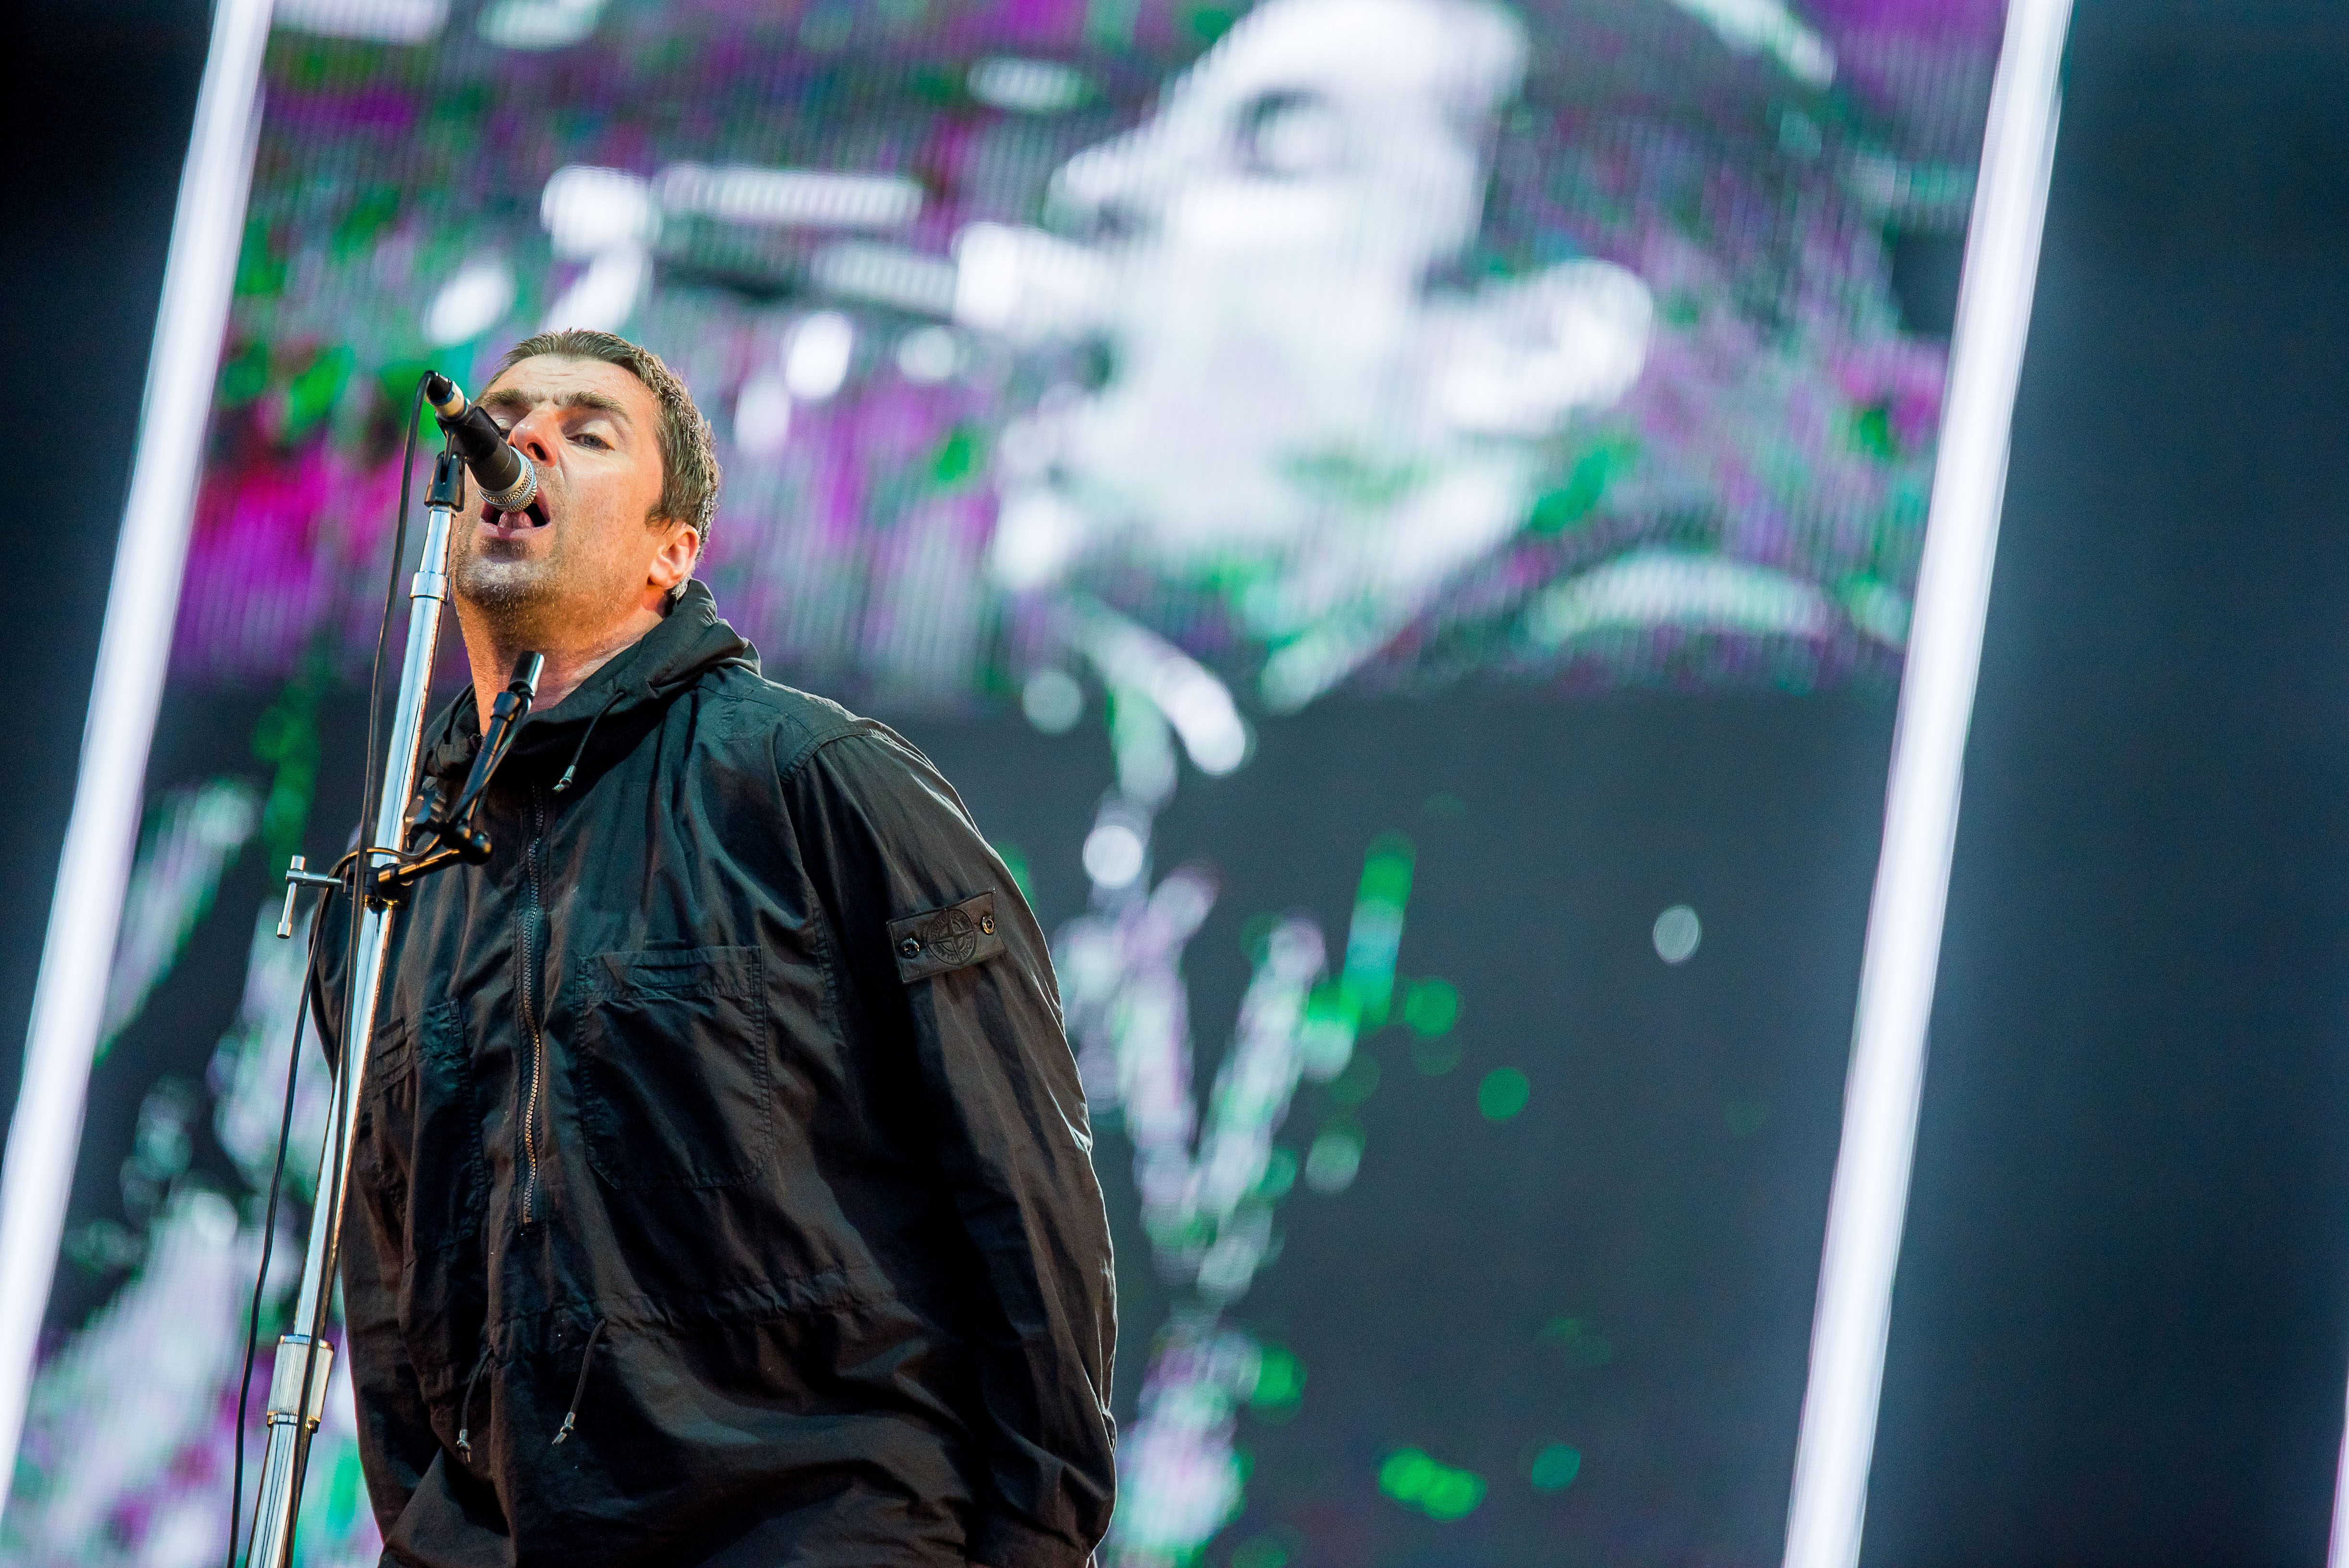 Liam Gallagher, Sziget 2018 - Foto de Rockstar Photographers